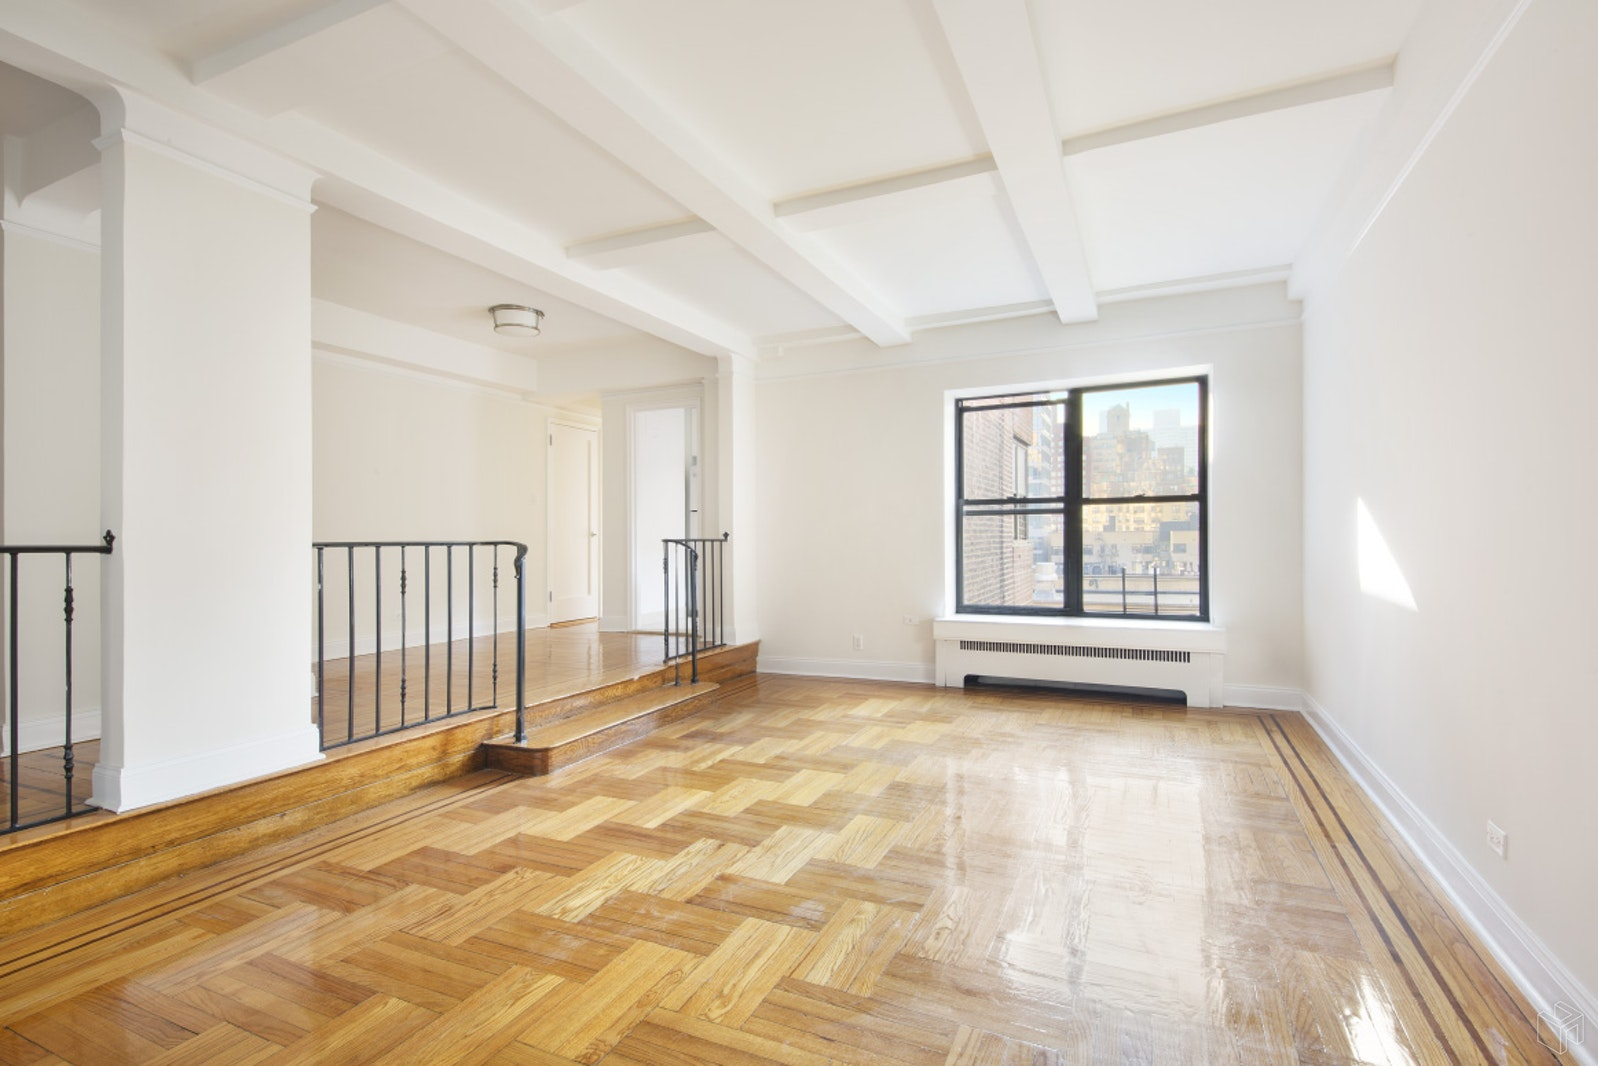 231 East 76th Street, Upper East Side, NYC, 10021, Price Not Disclosed, Rented Property, Halstead Real Estate, Photo 1